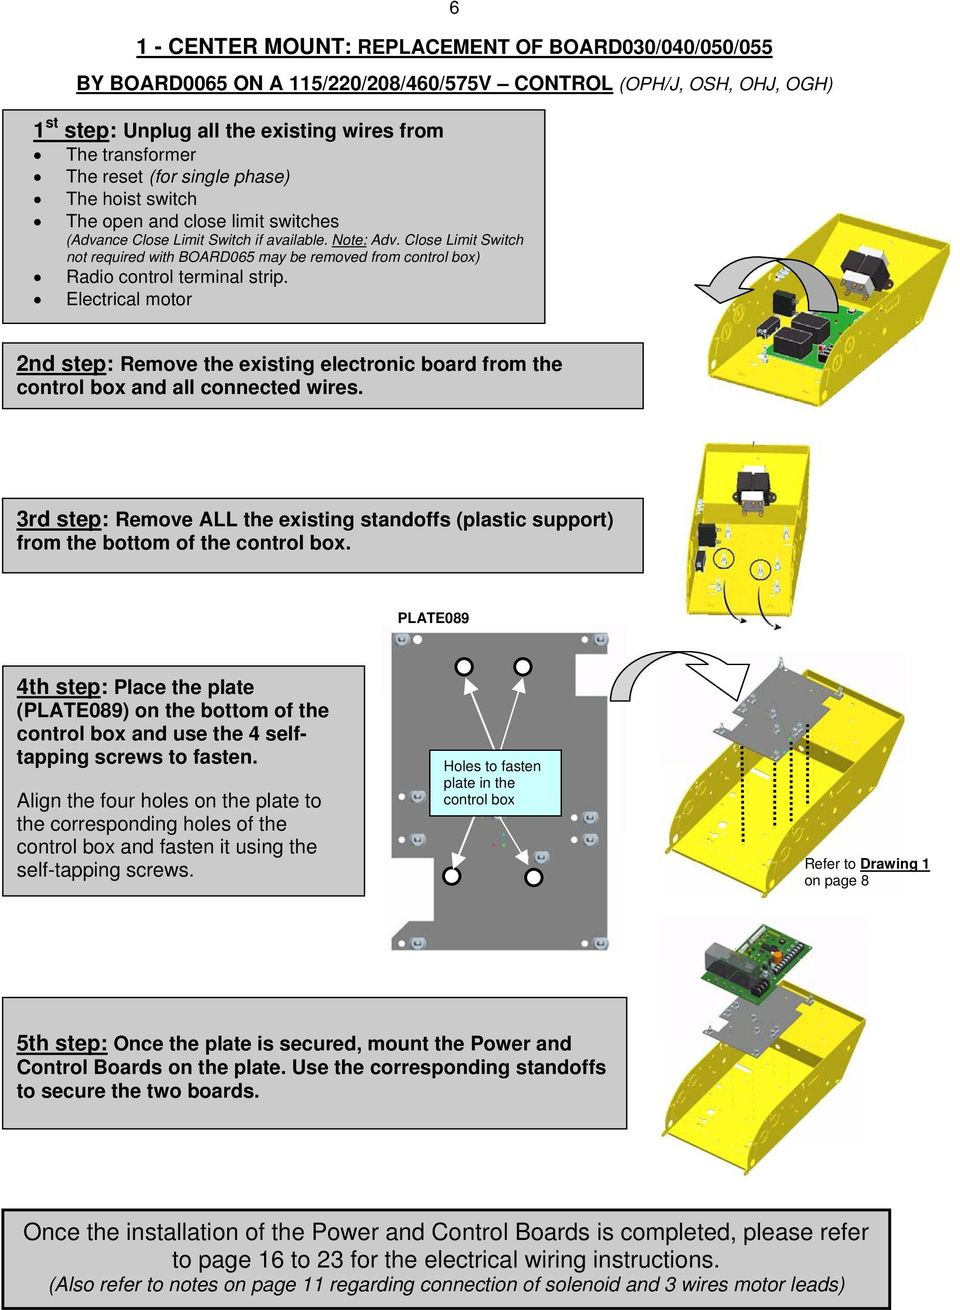 Model Date Wiring Diagram Door No Pdf Electric Latch Retraction Close Limit Switch Not Required With Board065 May Be Removed From Control Box Radio